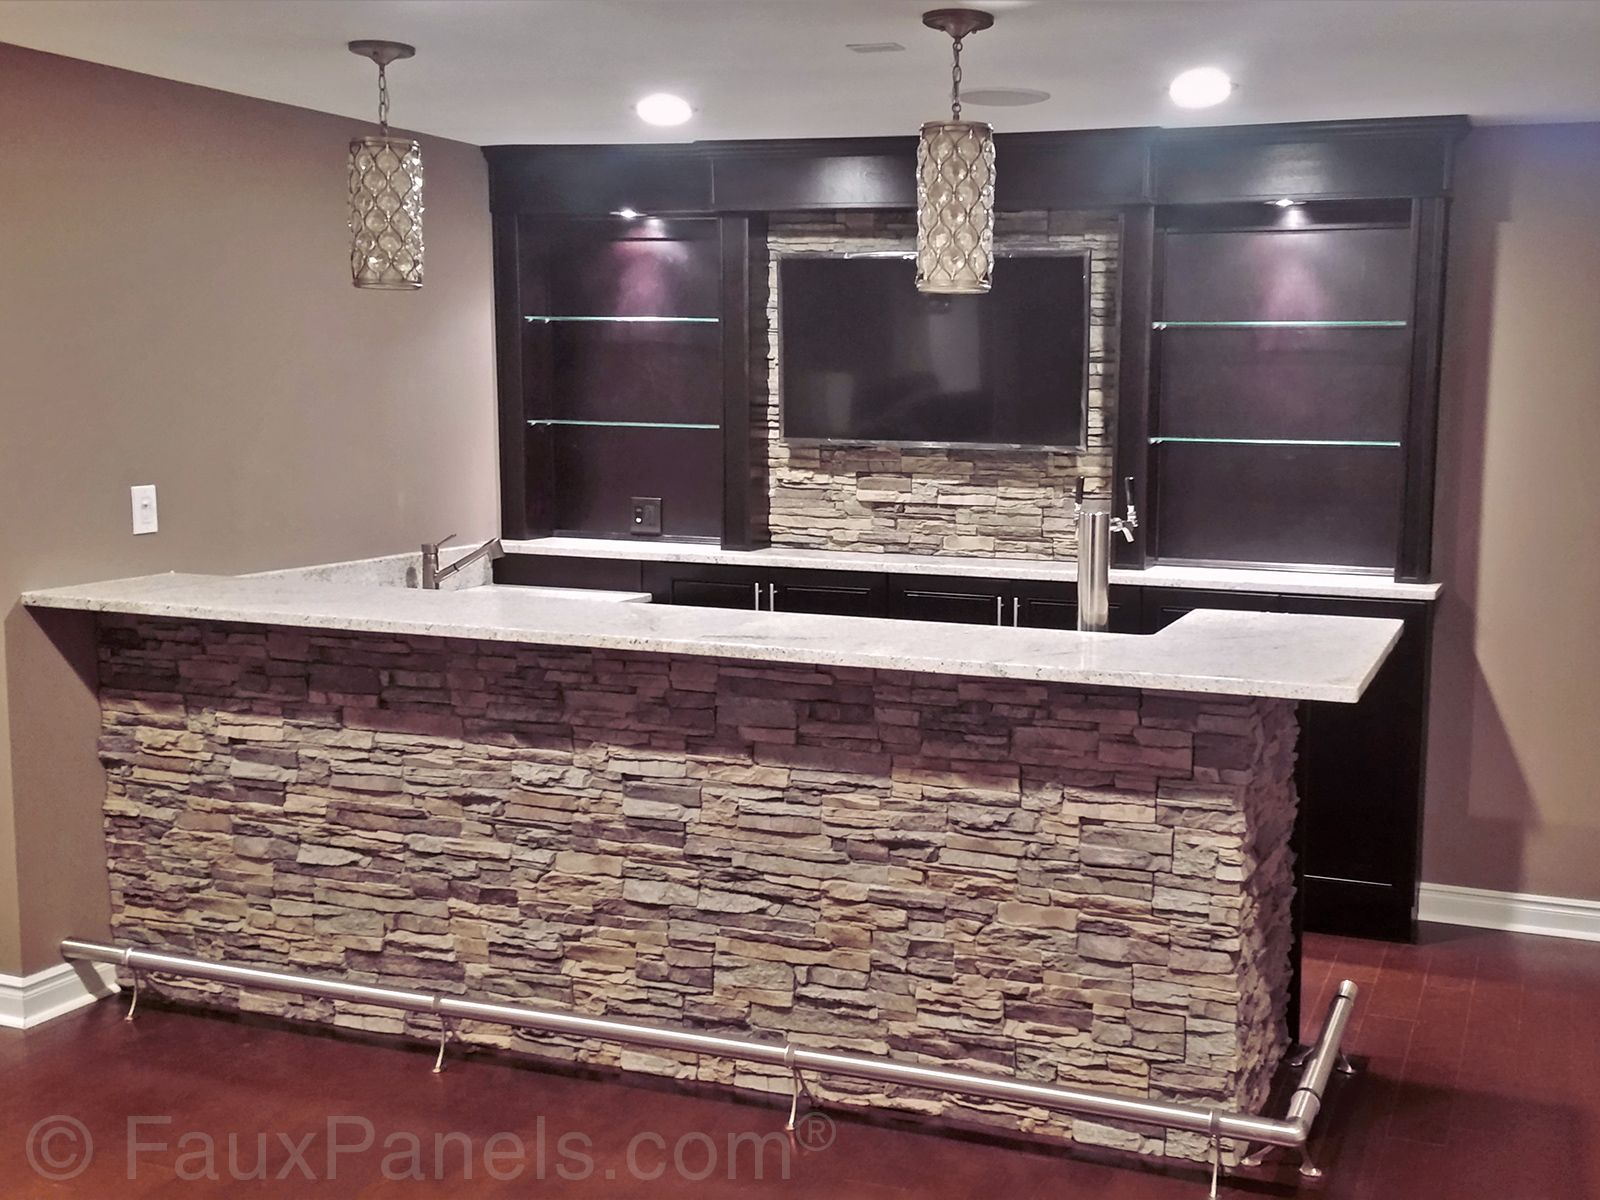 Basement Bar Design Ideas basement bar ideas and designs pictures options tips hgtv Home Bar Pictures Design Ideas For Your Home Bar Plans